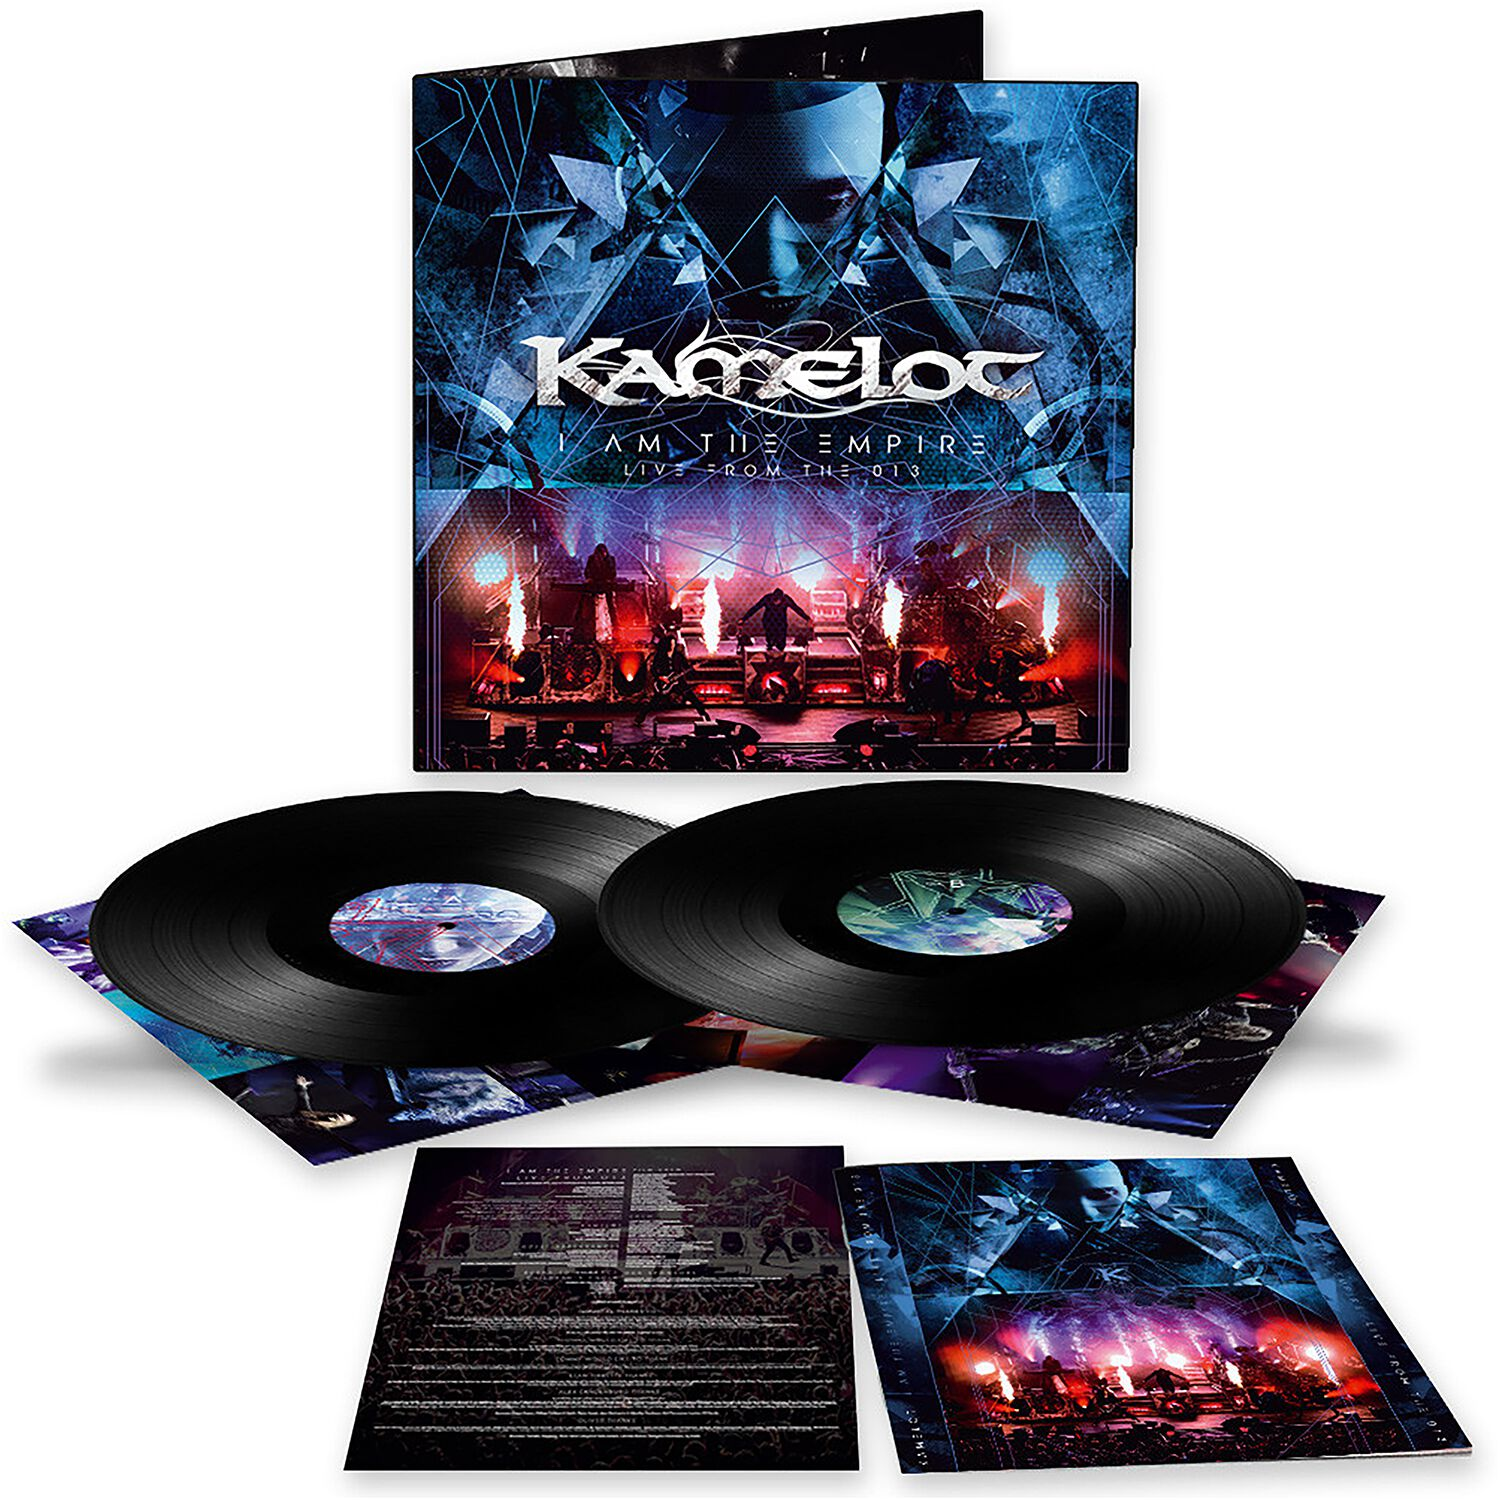 Image of Kamelot I am the empire - Live from the 013 2-LP & DVD Standard